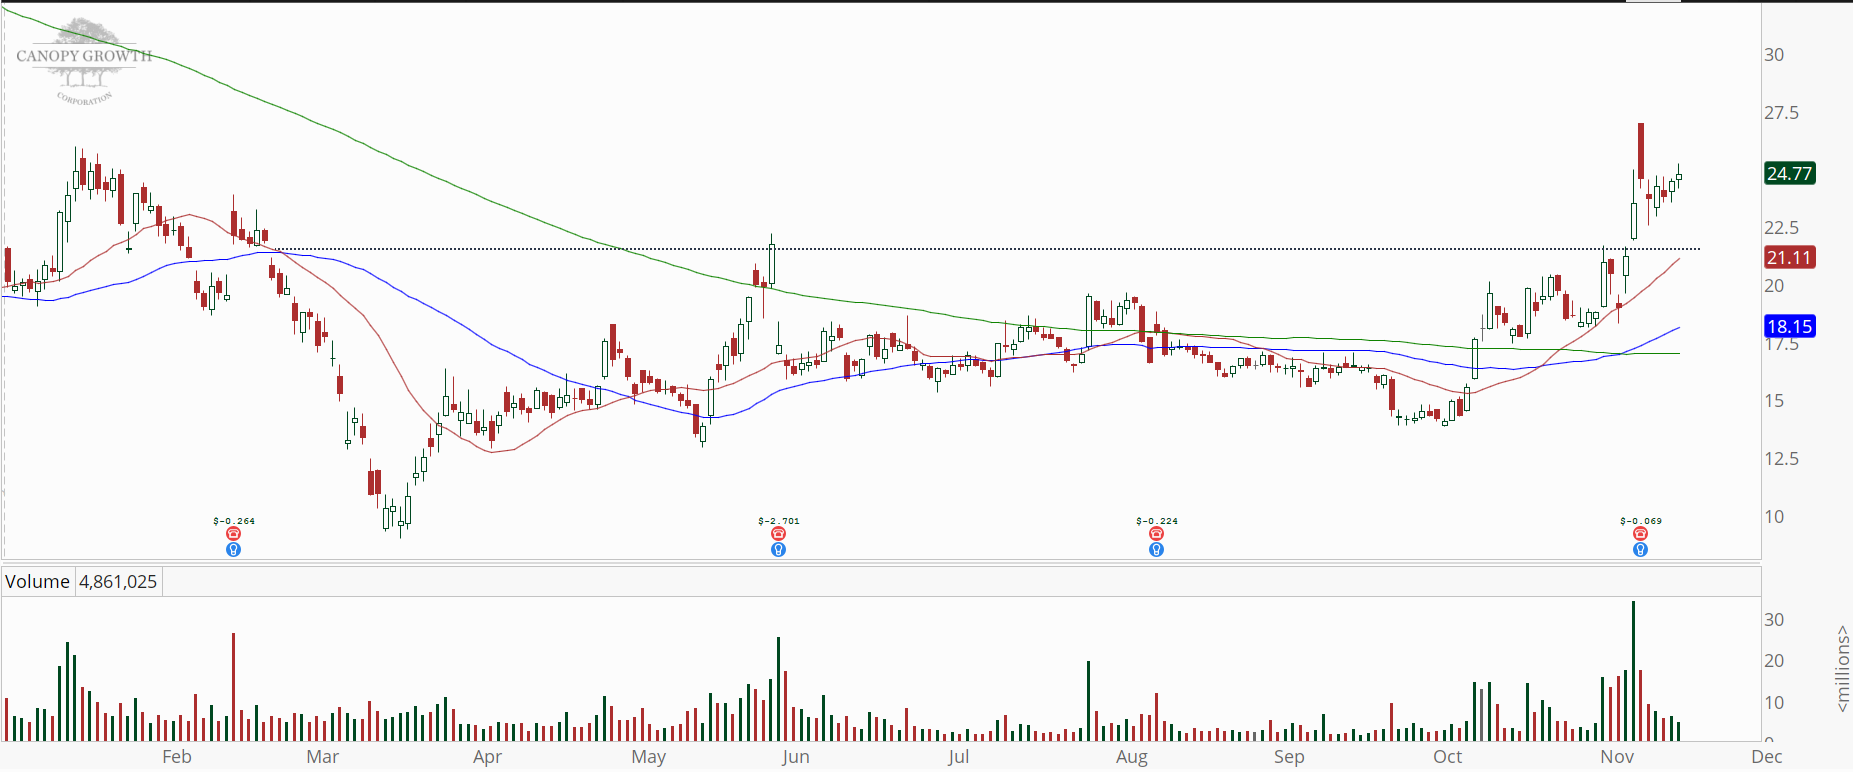 Canopy Growth Corp (CGC) daily chart with momentum surge